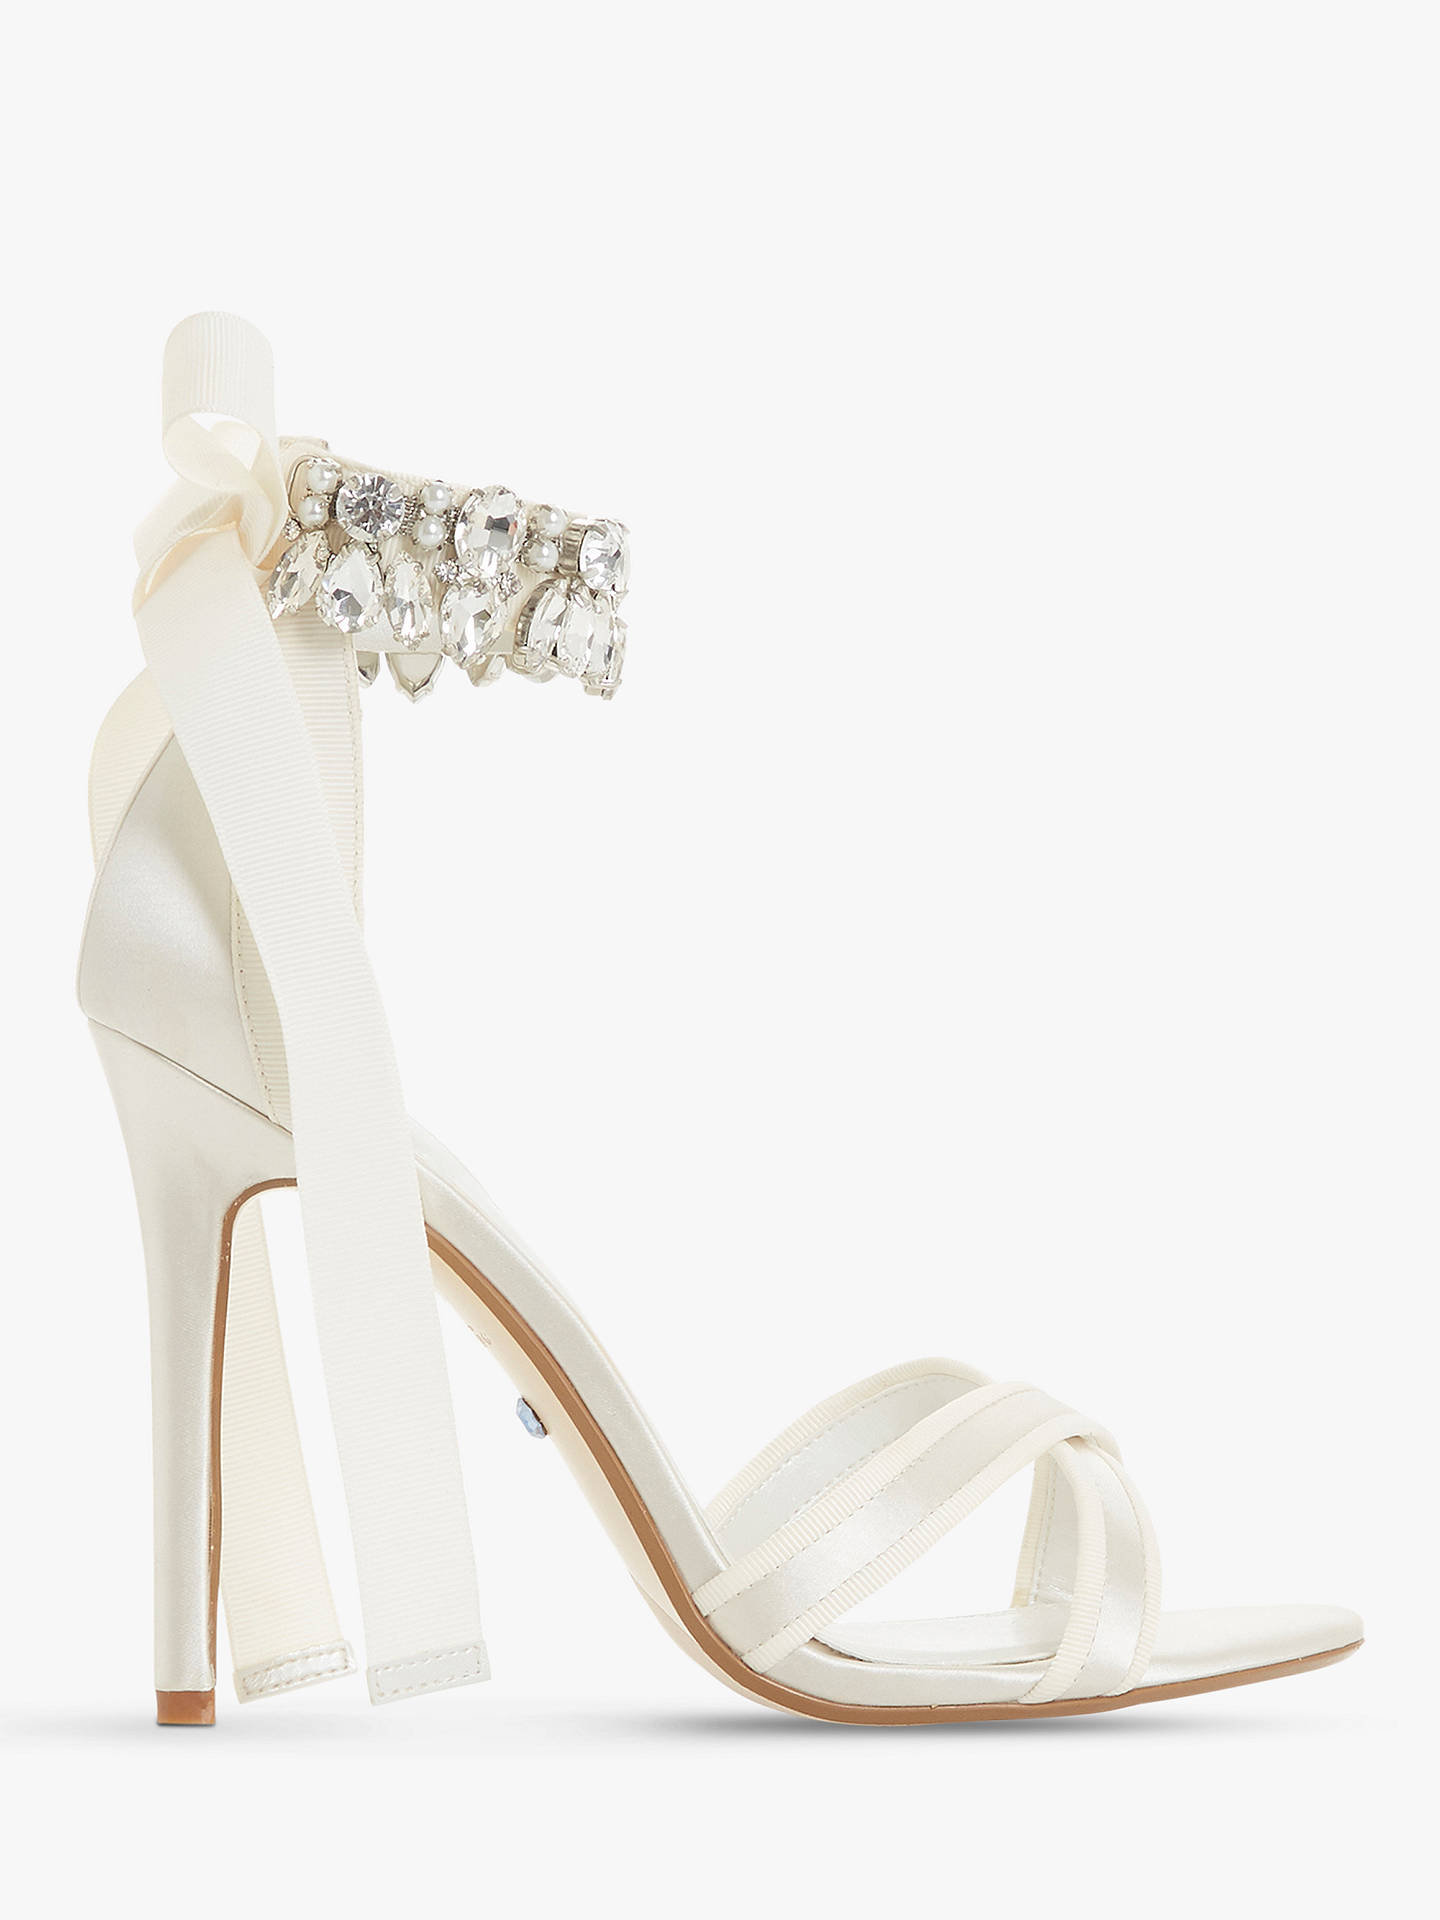 4980c9f21d52b0 Buy Dune Bridal Collection Mrs Crystal Ankle Tie Stiletto Sandals